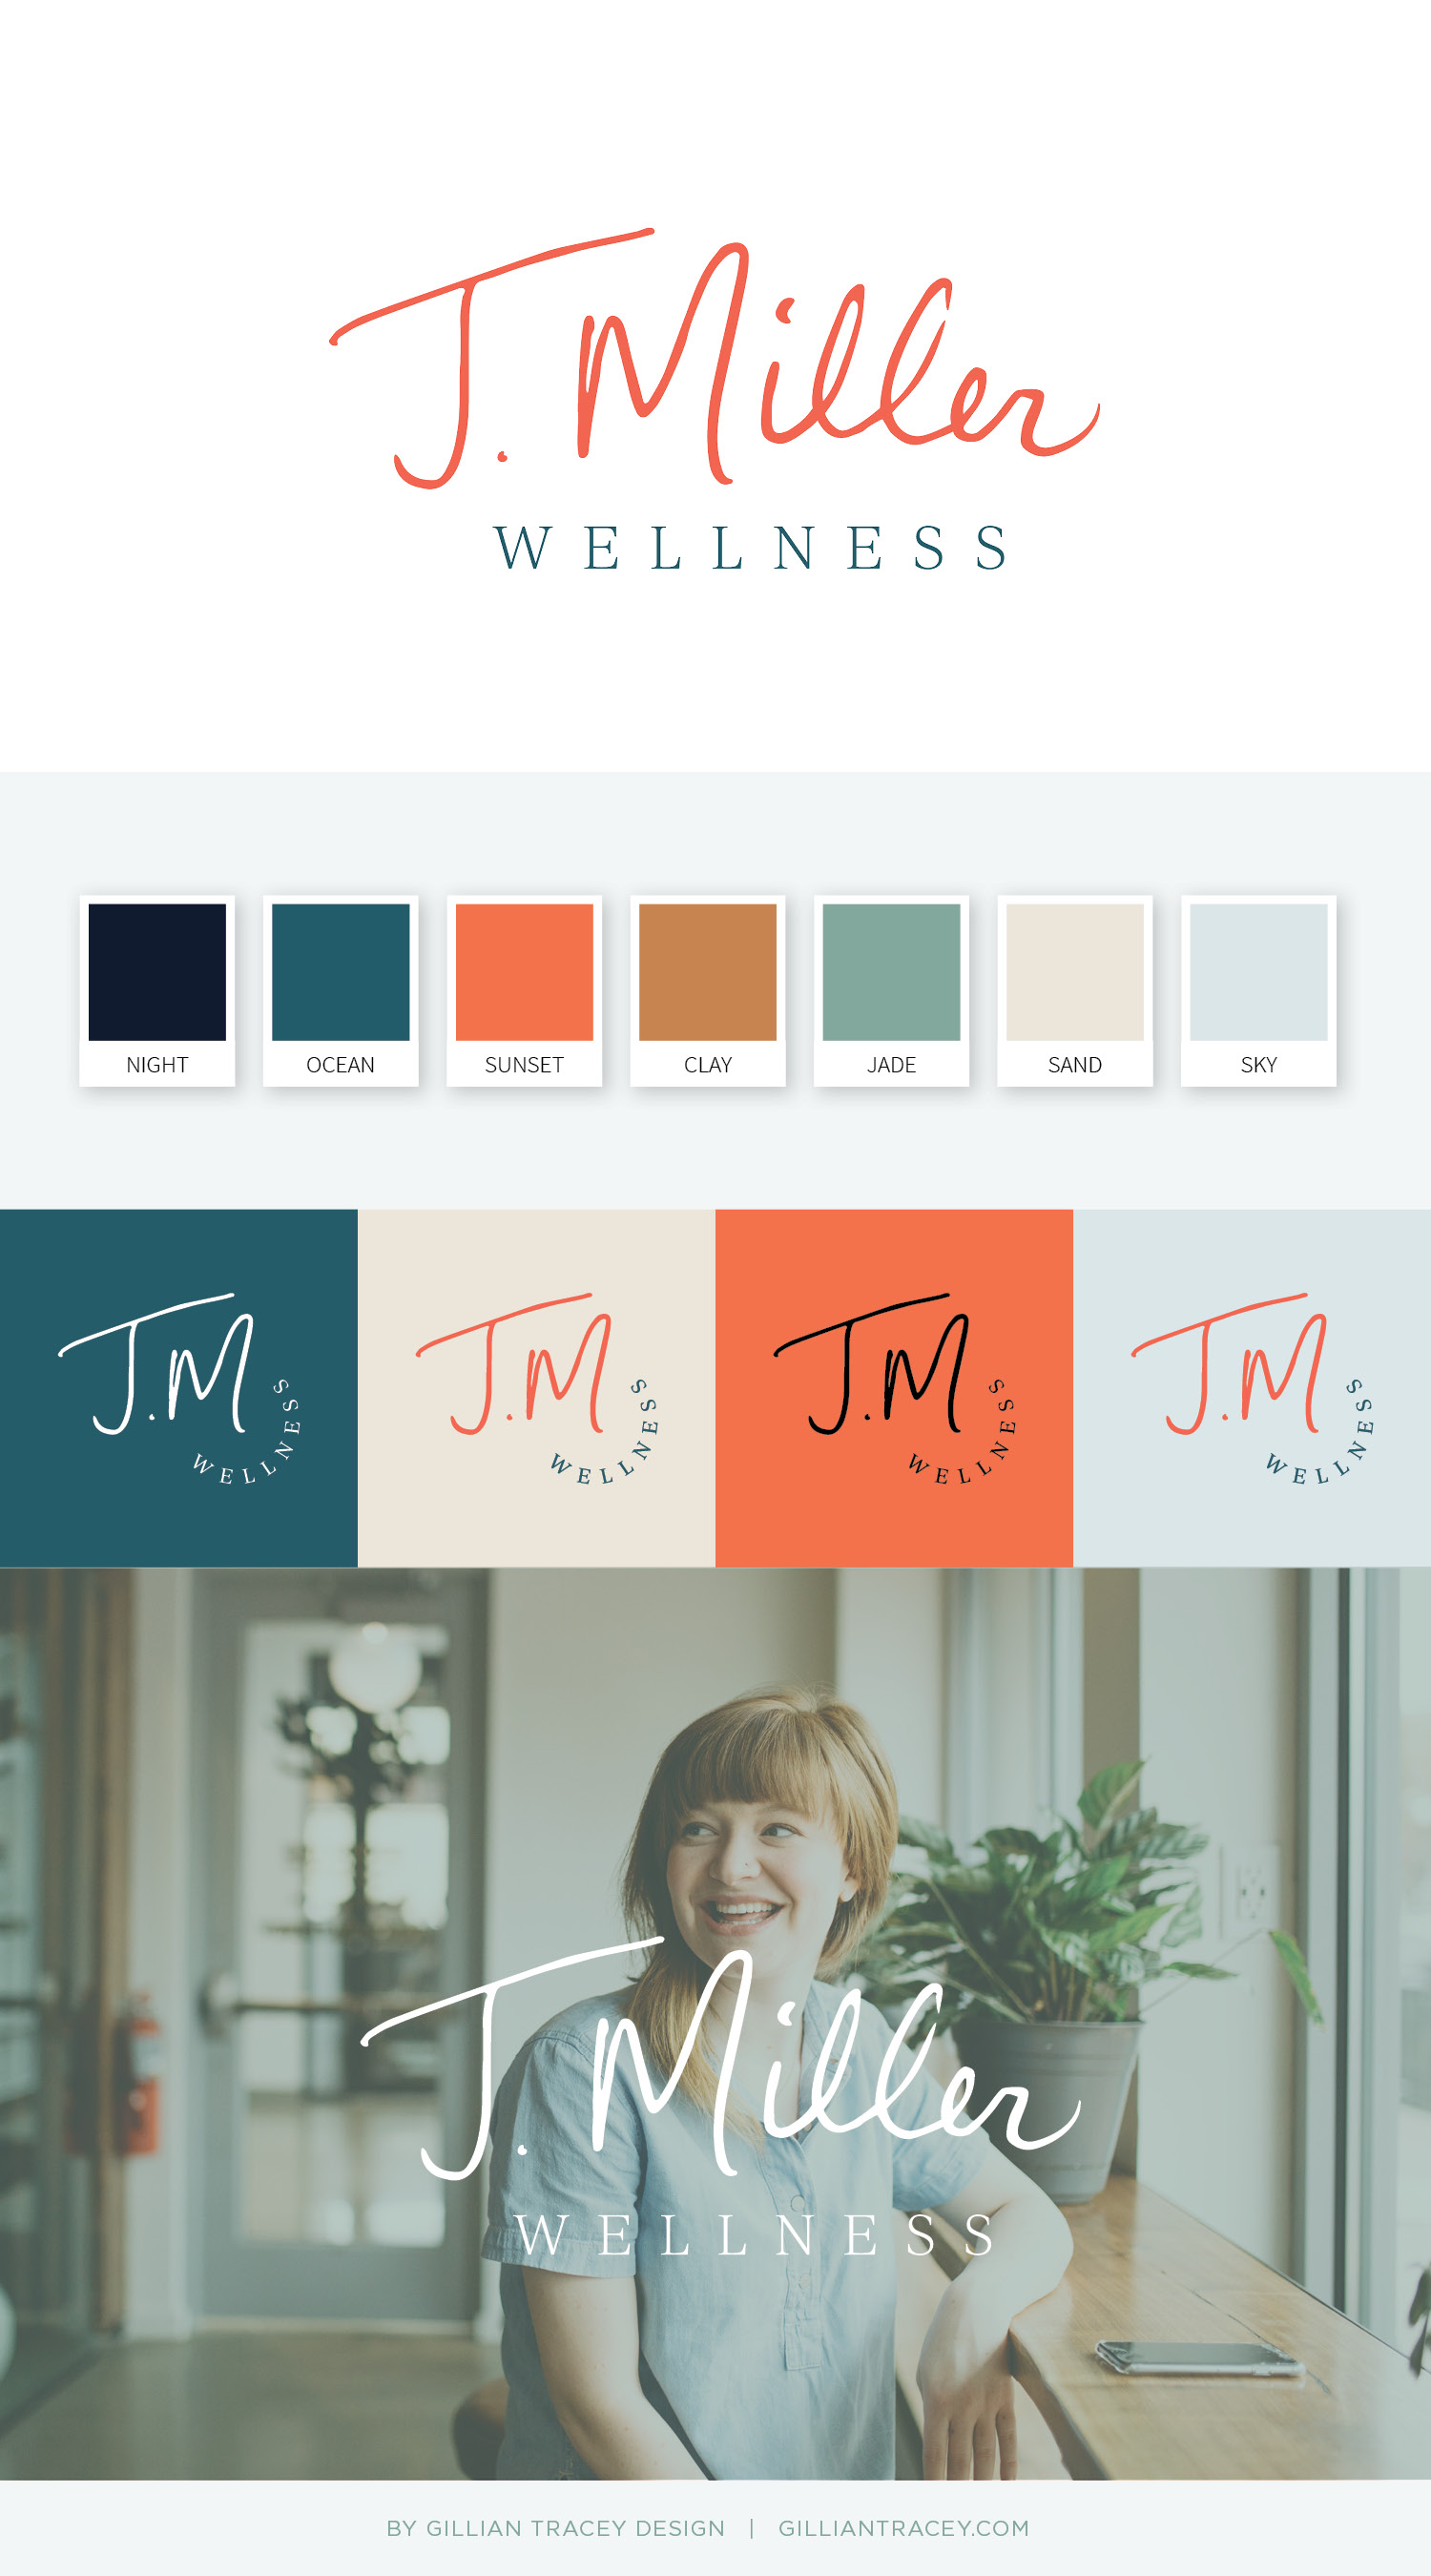 J. Miller Wellness branding by Gillian Tracey Design